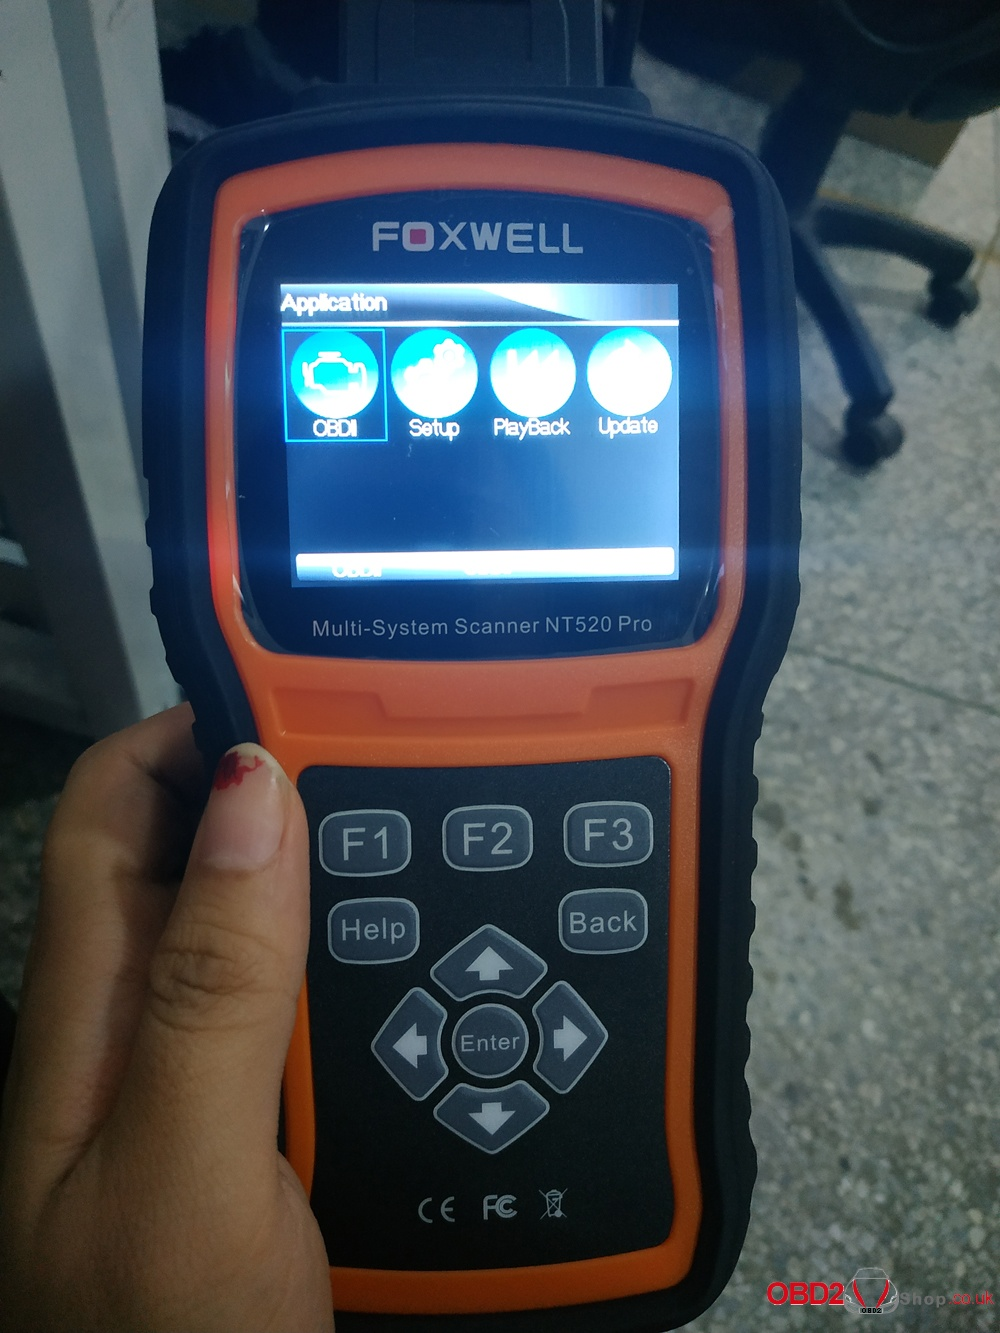 Foxwell NT520 Pro full system scanner compares with Foxwell